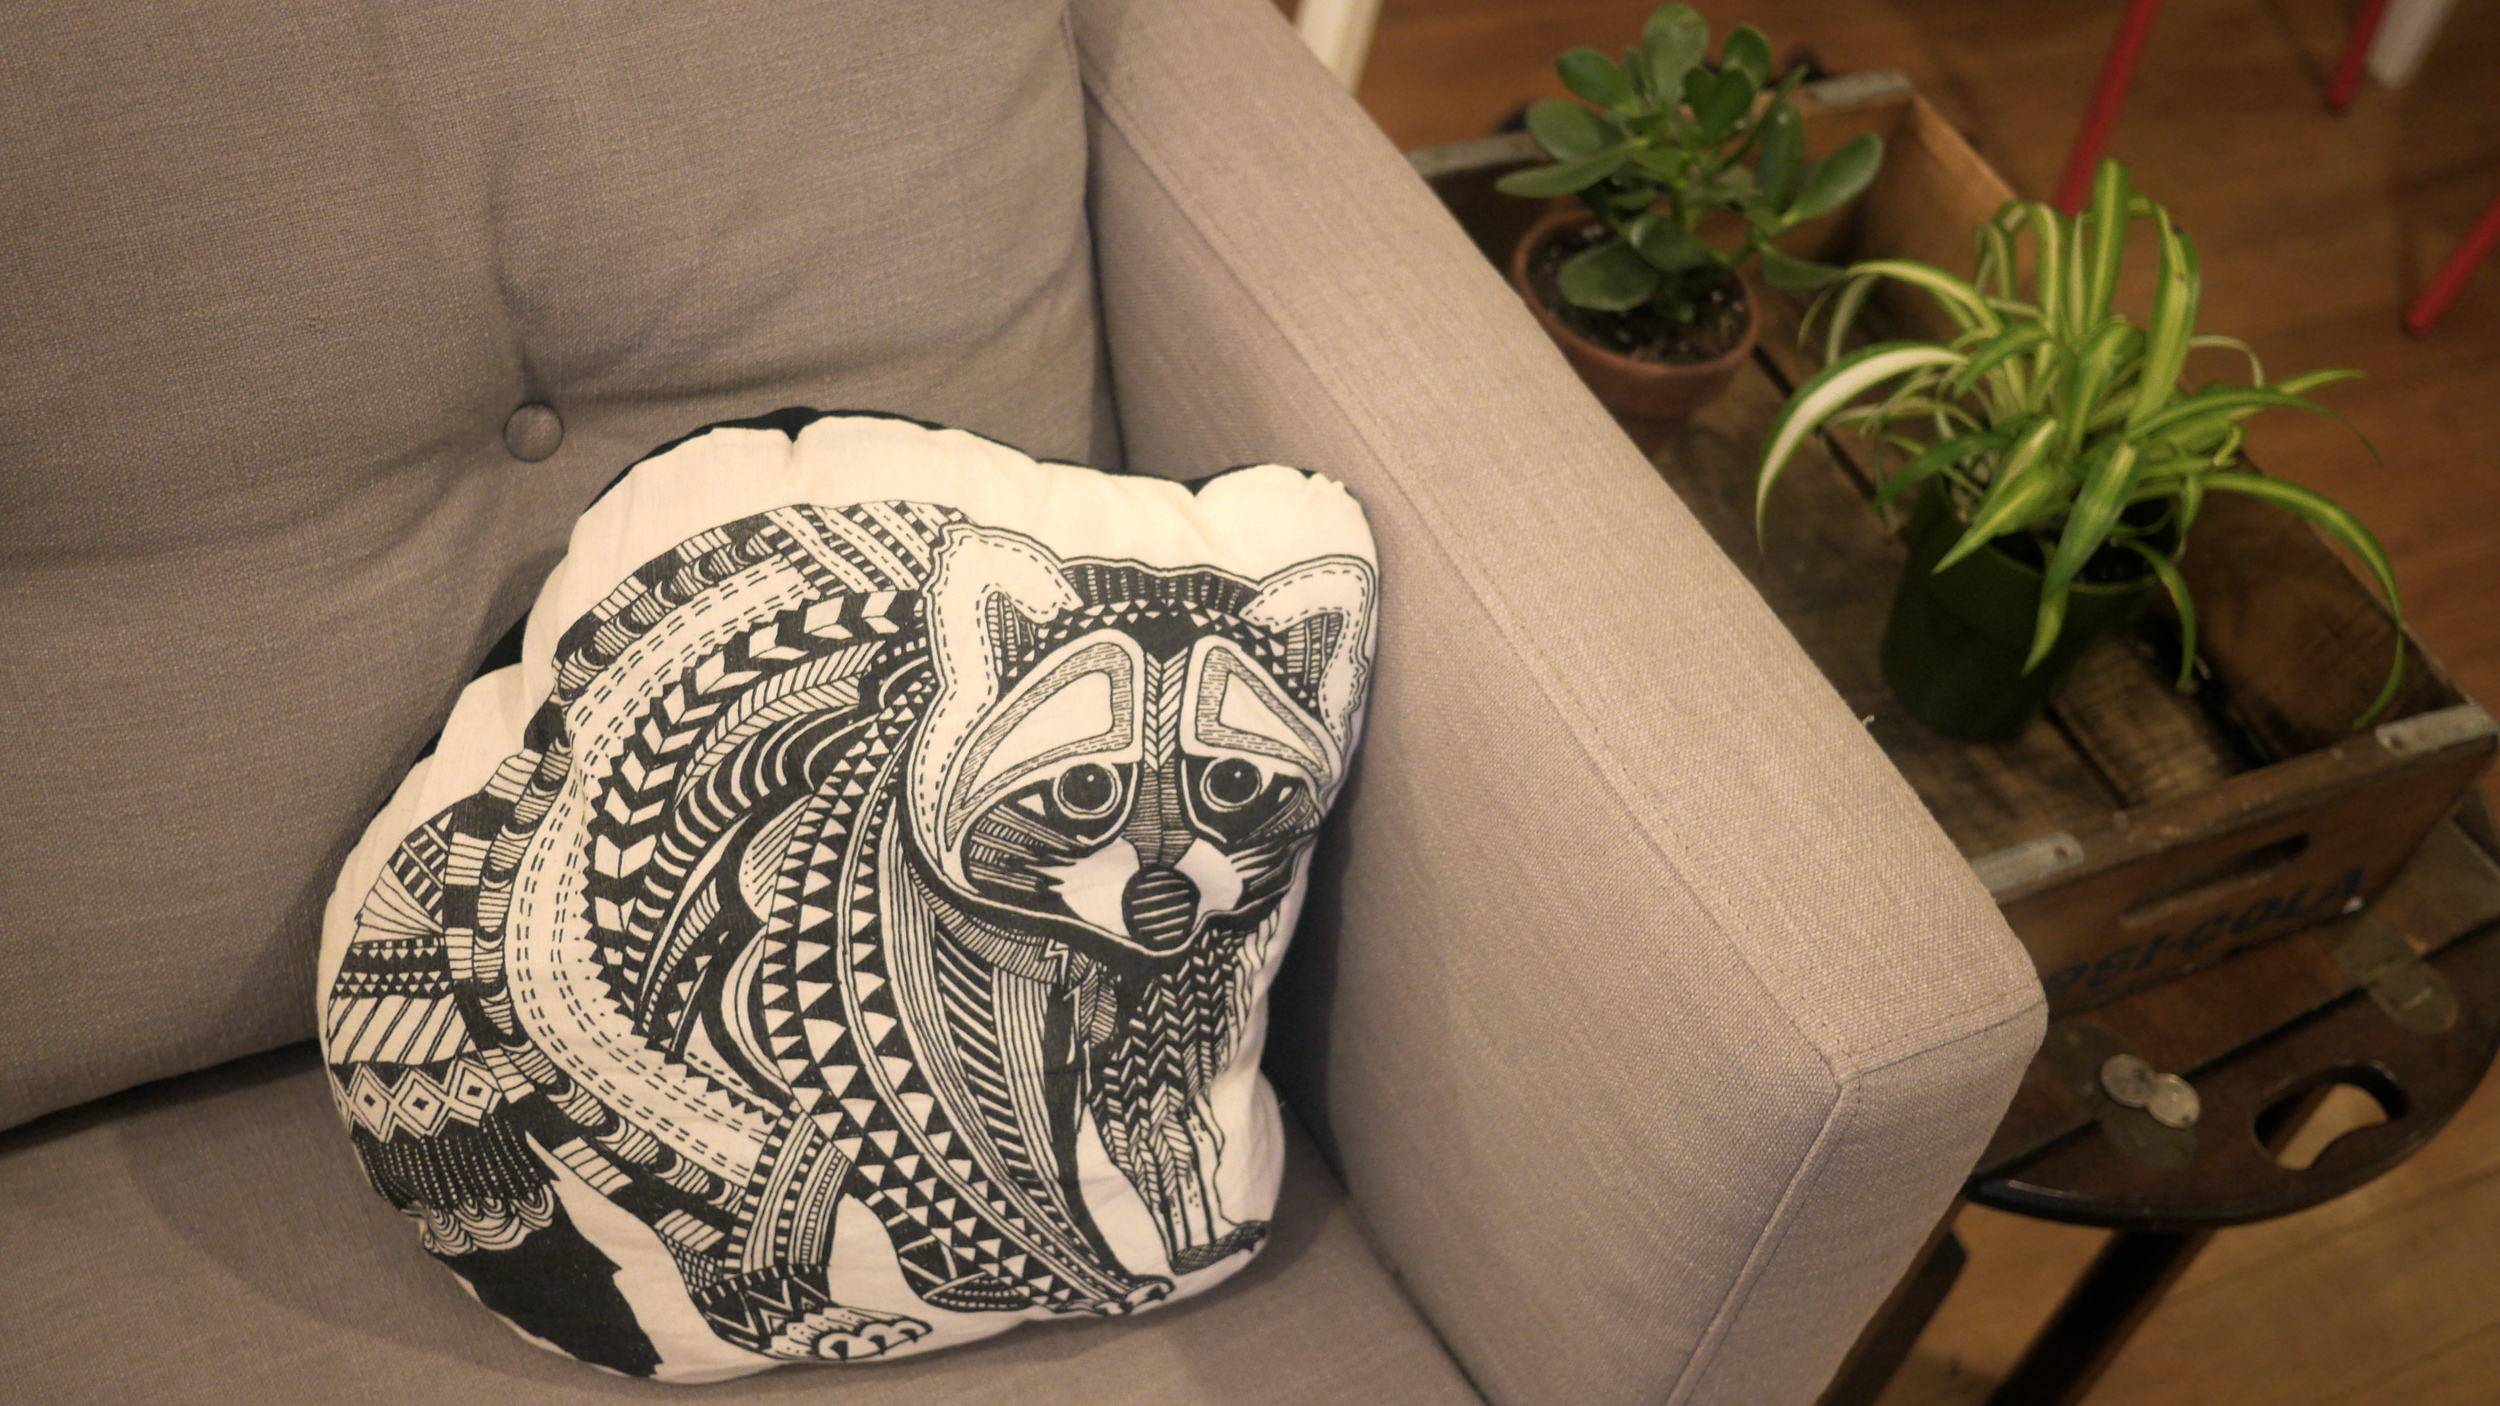 sweetest new couch pillow. his name is sgt. pepper.